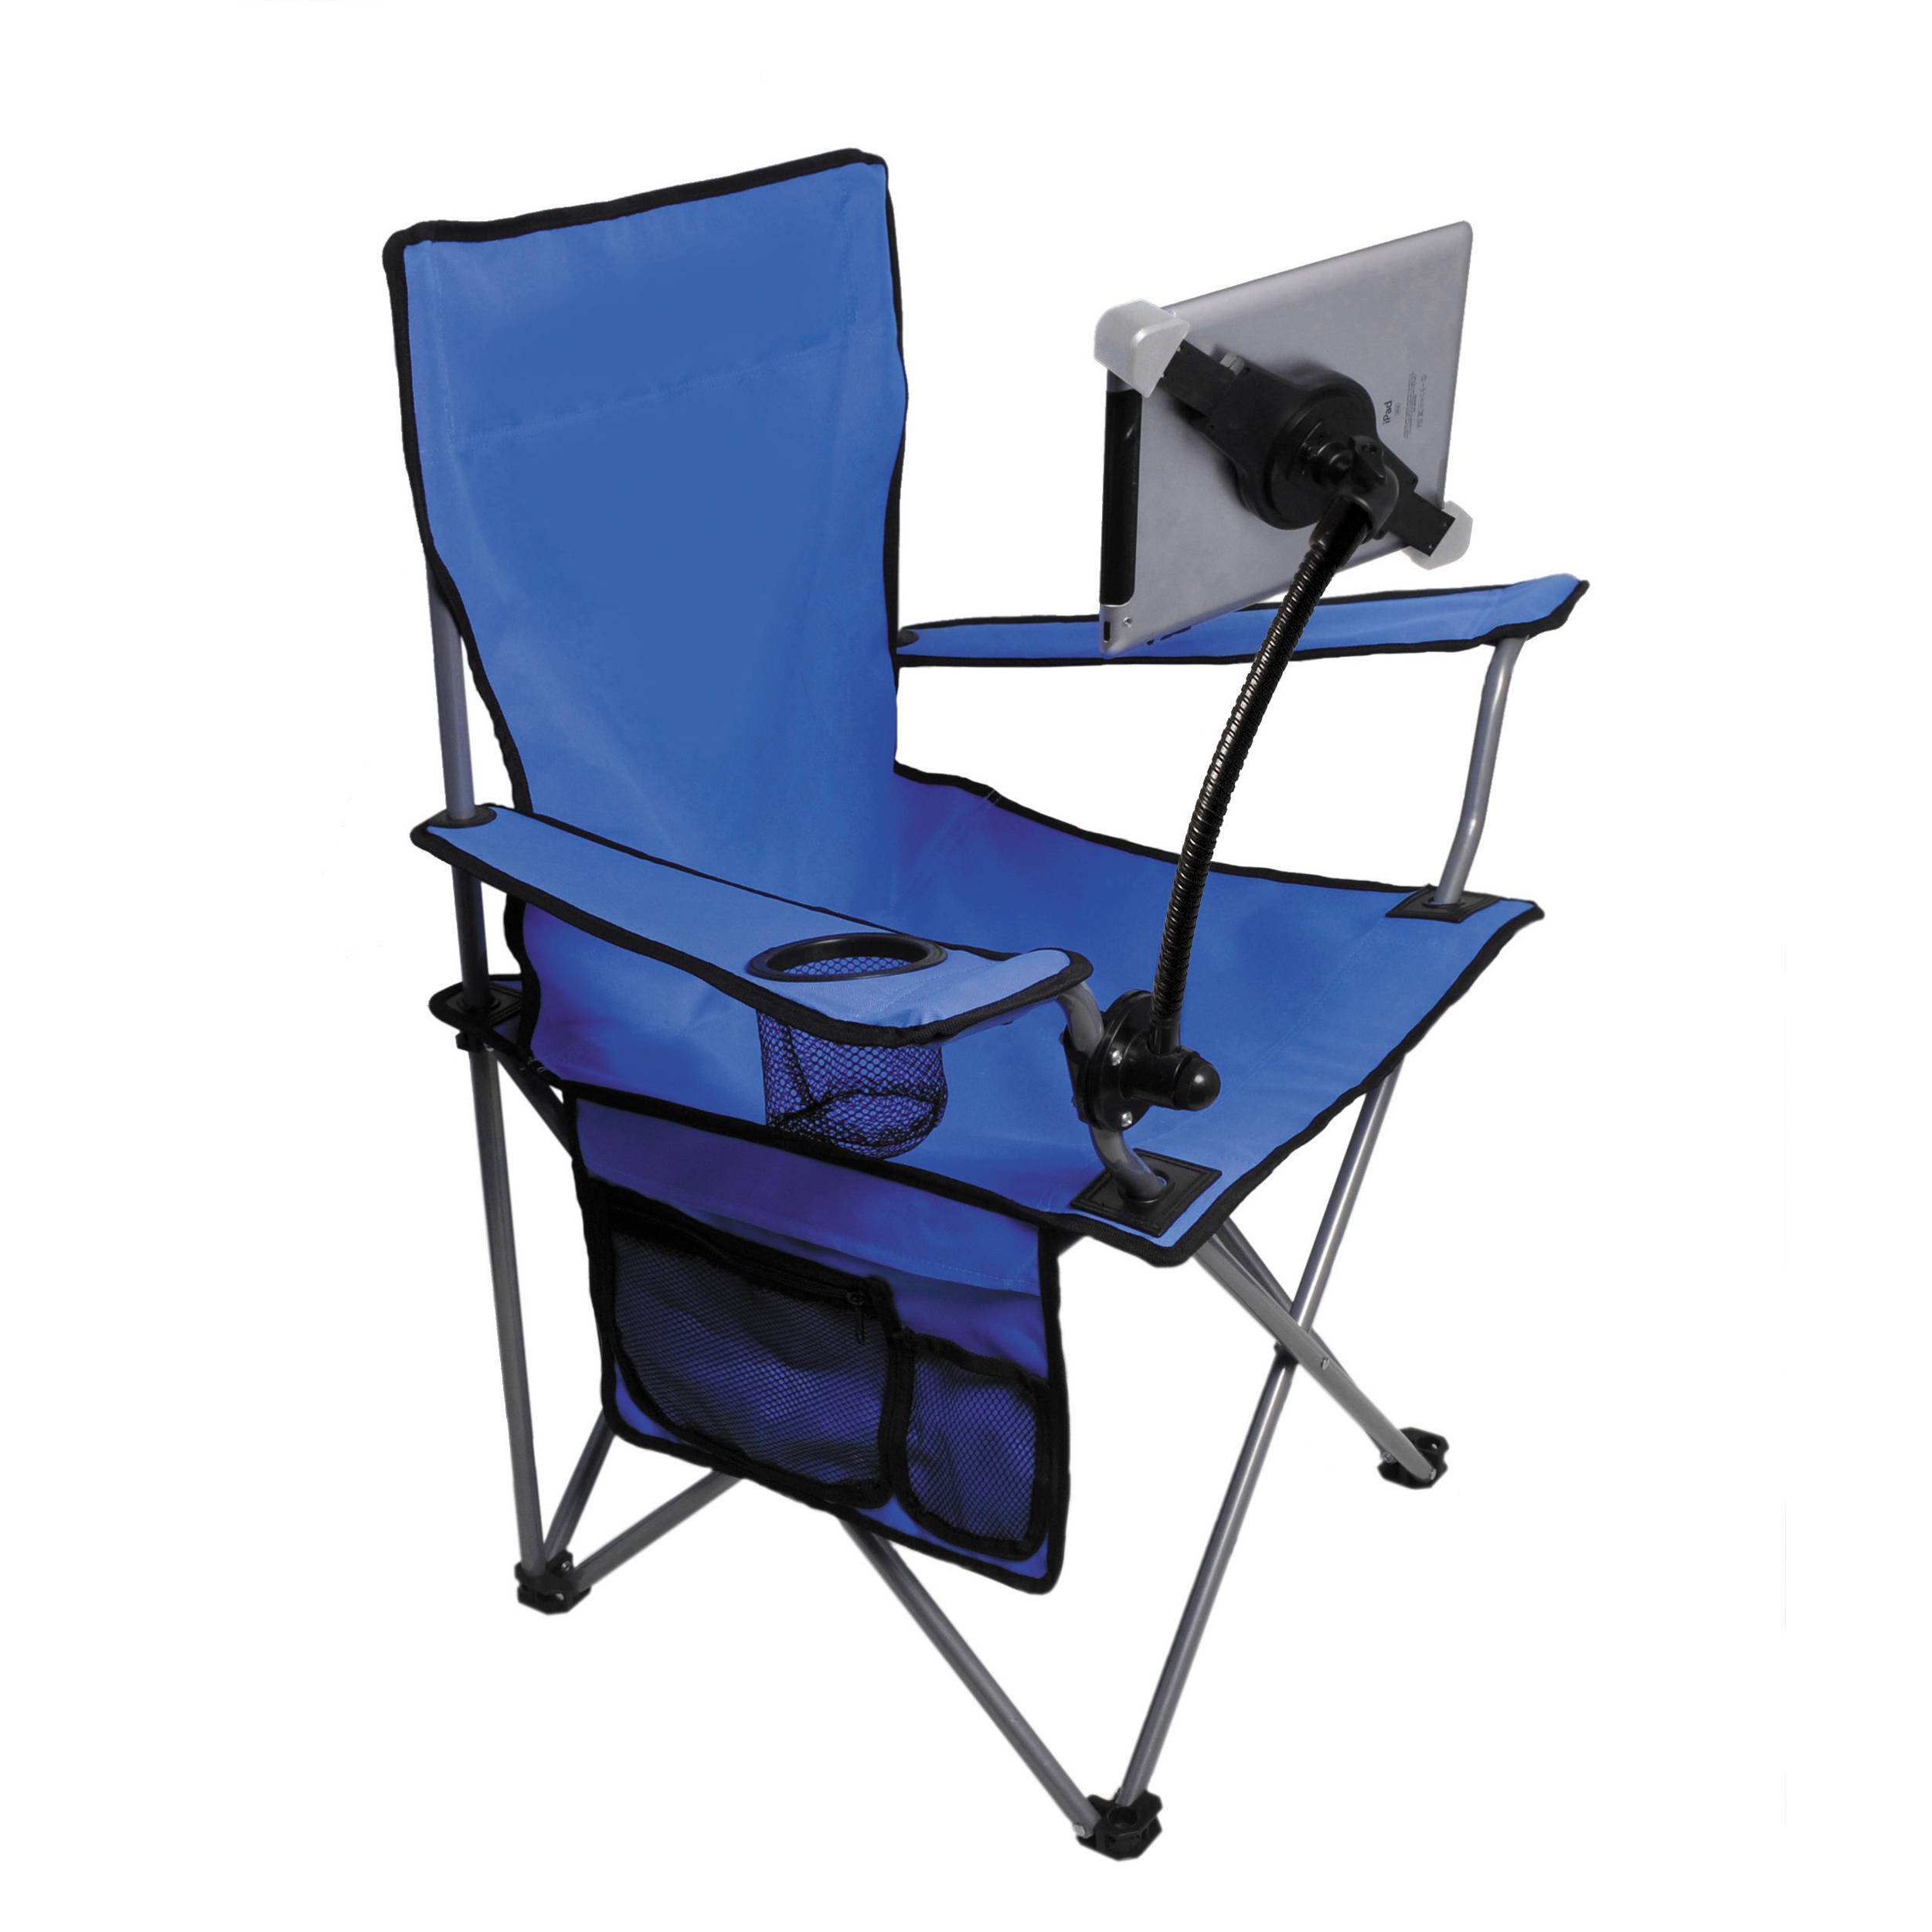 IPod, IPad, Or IPhone Not Included. CTA Digital Folding Lawn Chair With  Adjustable Universal ...